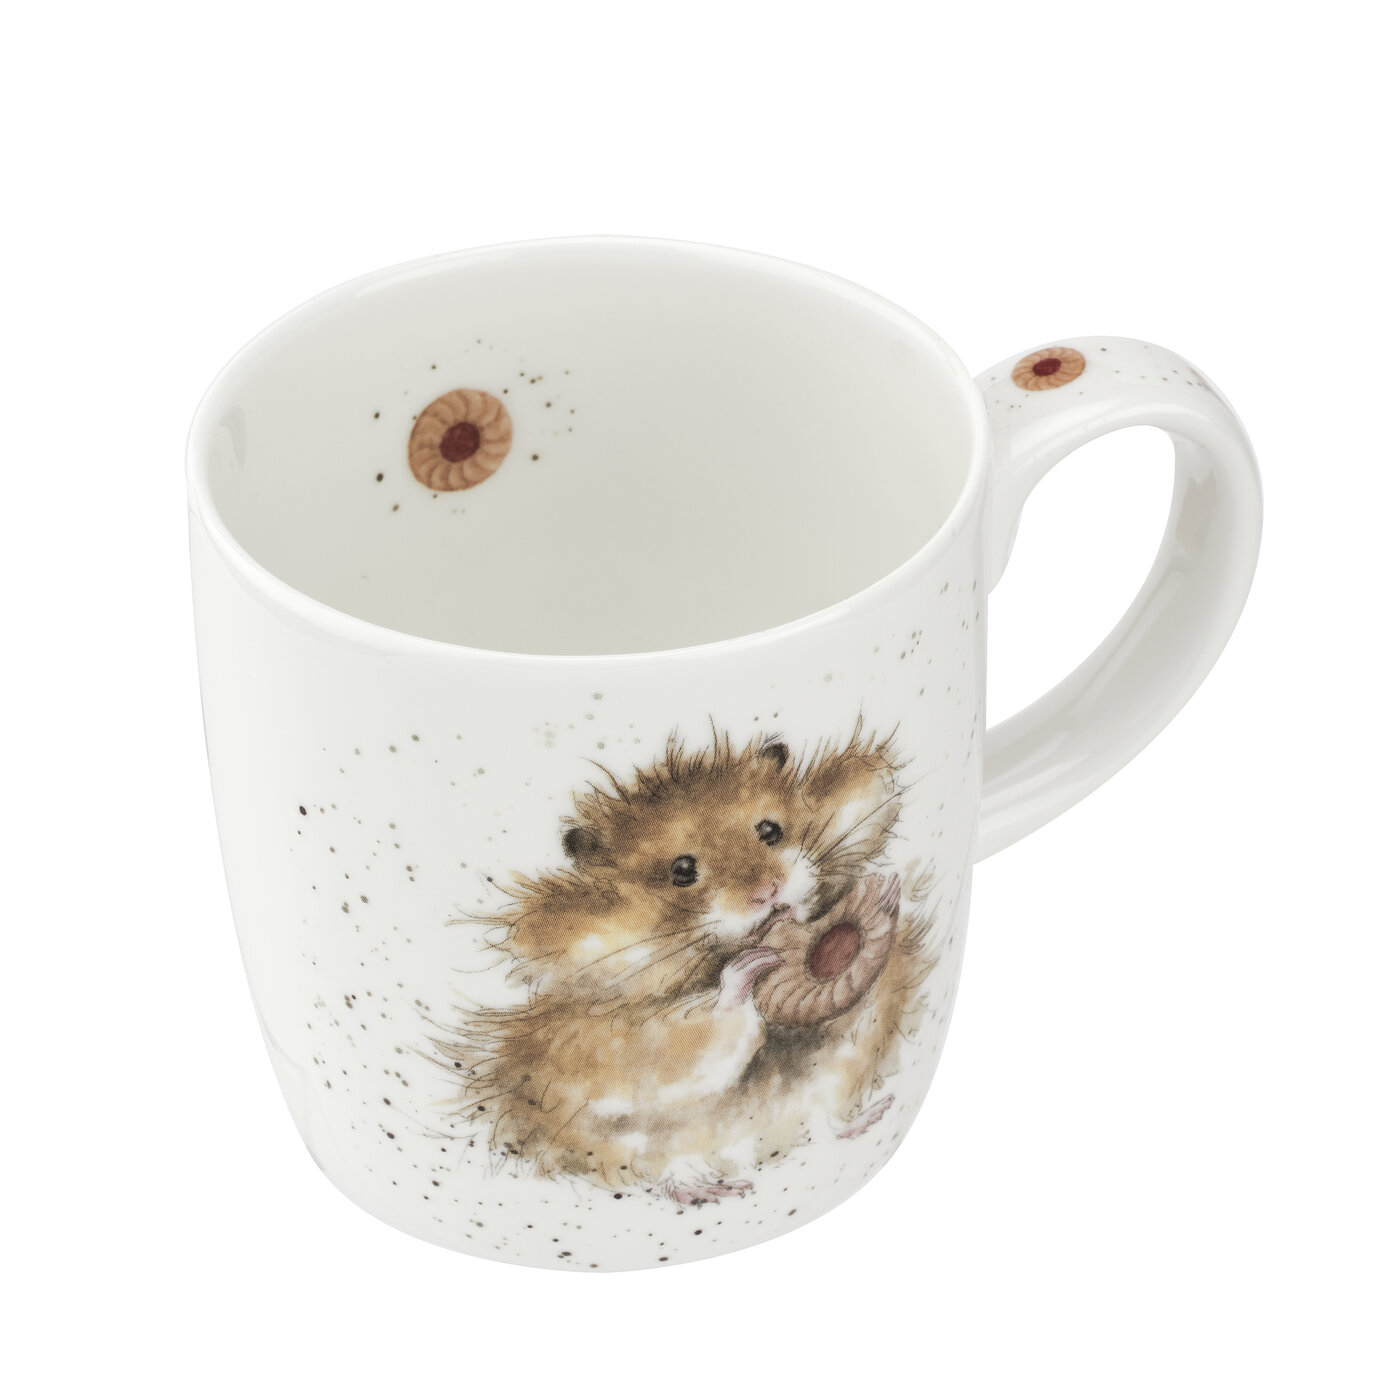 Wrendale Designs 14 Ounce Mug Diet Starts Tomorrow (Hamster) image number 2